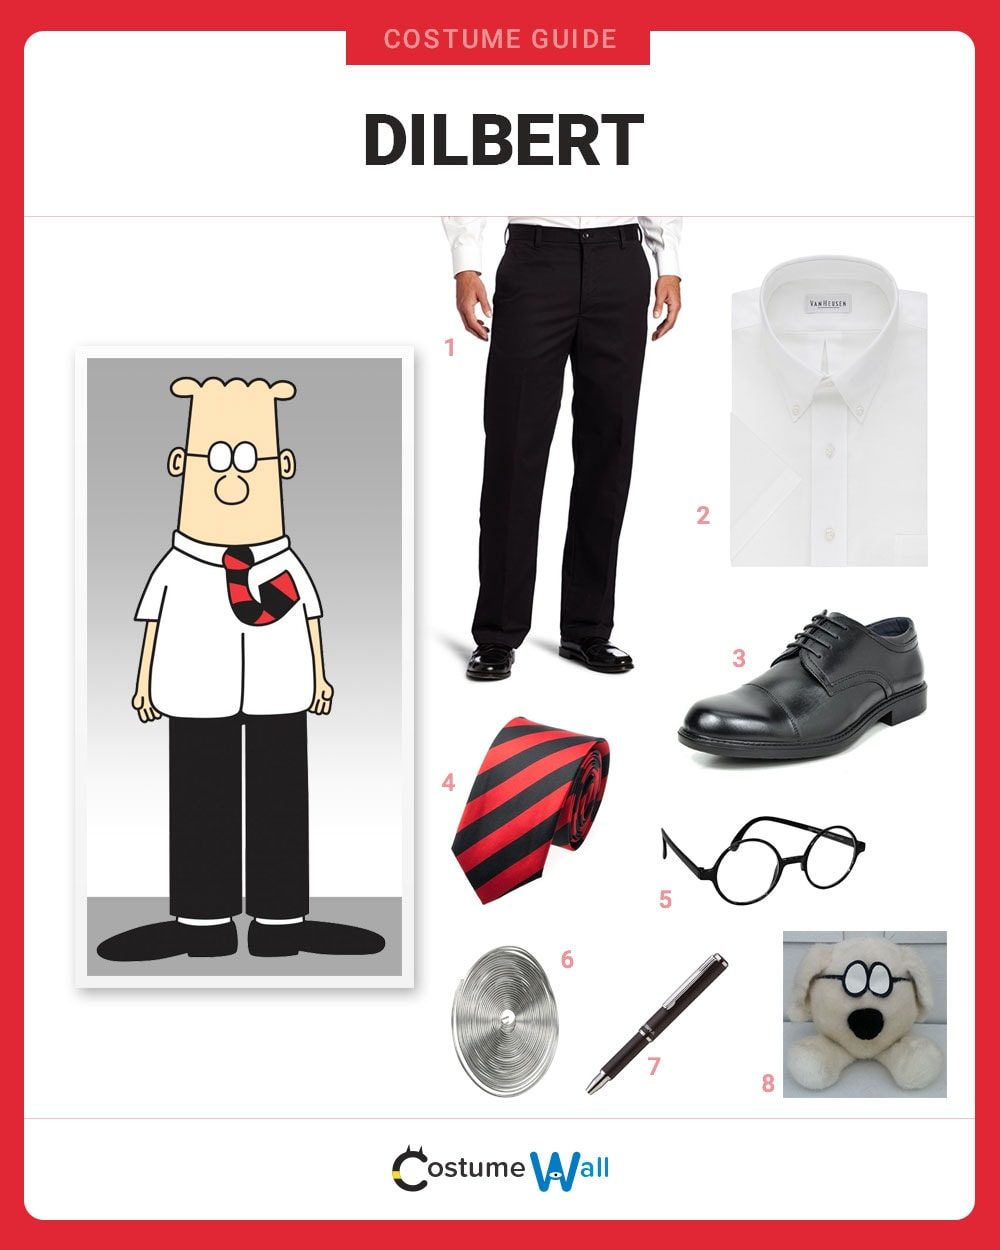 Dilbert Costume Guide